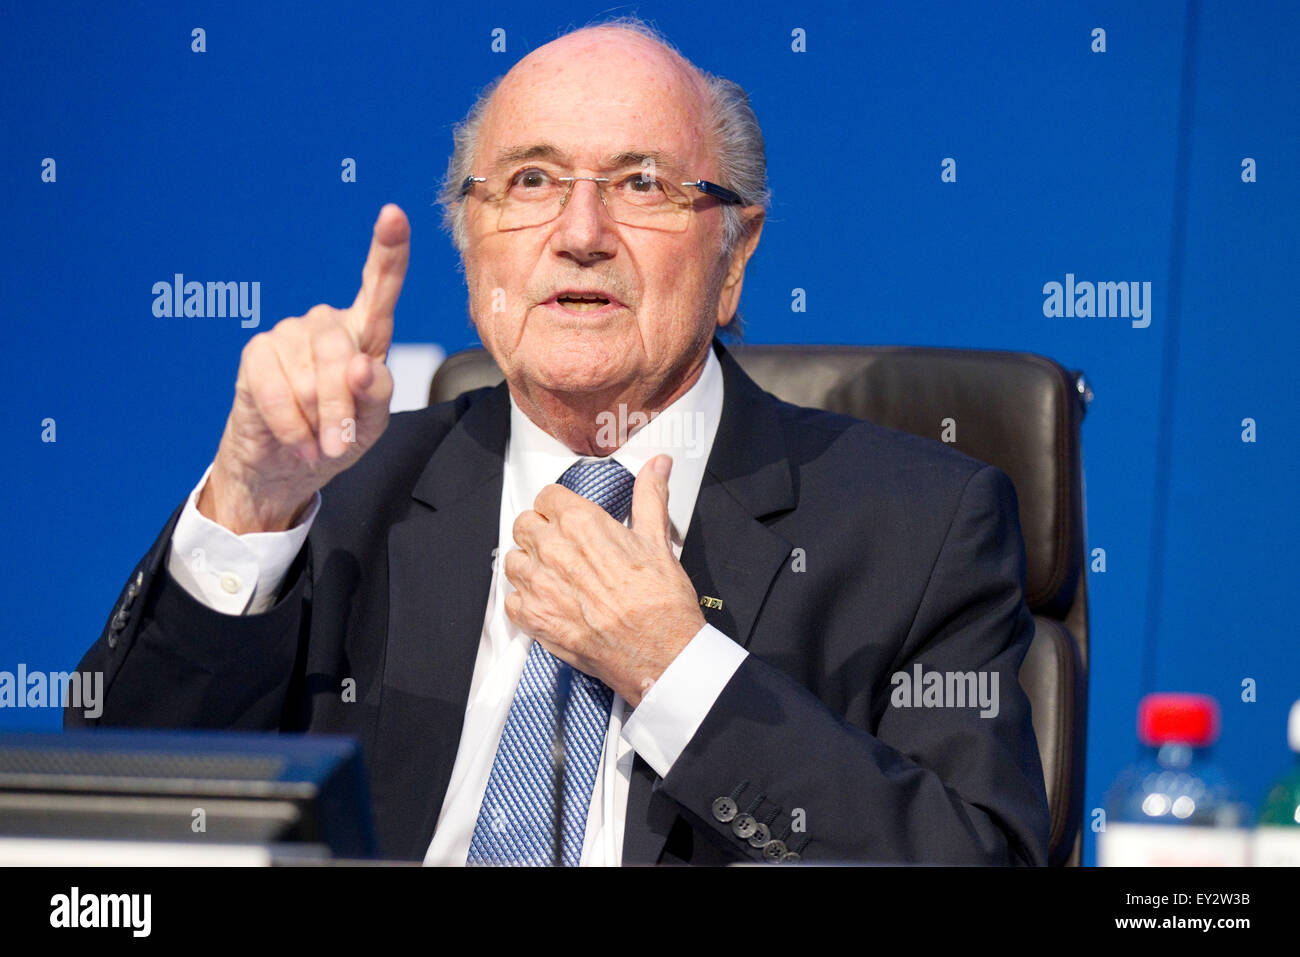 Zurich, Switzerland. 20th July, 2015. FIFA President Joseph Blatter attends a press conference at the Extraordinary - Stock Image